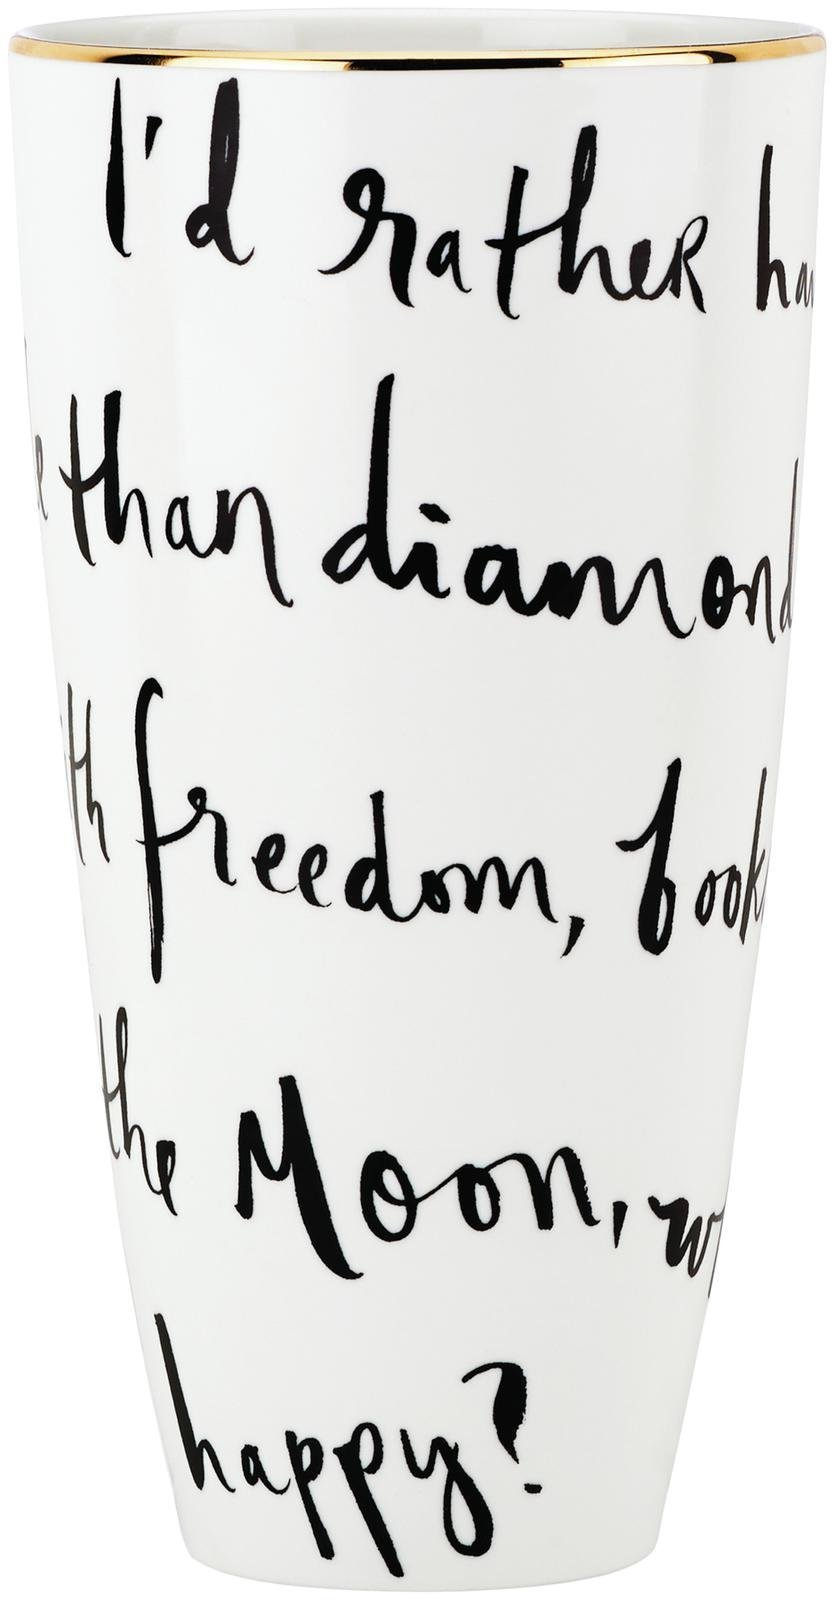 "Kate Spade New York Daisy Place I'd Rather Be Vase, 9"" - Whimsical decorative kate spade 9"" flower vase Inscribed with ""I'd rather have roses on my table than diamonds on my neck, with freedom, books, flowers, and the moon, who could not be happy?"" White porcelain - vases, kitchen-dining-room-decor, kitchen-dining-room - 613MuZdG84L -"